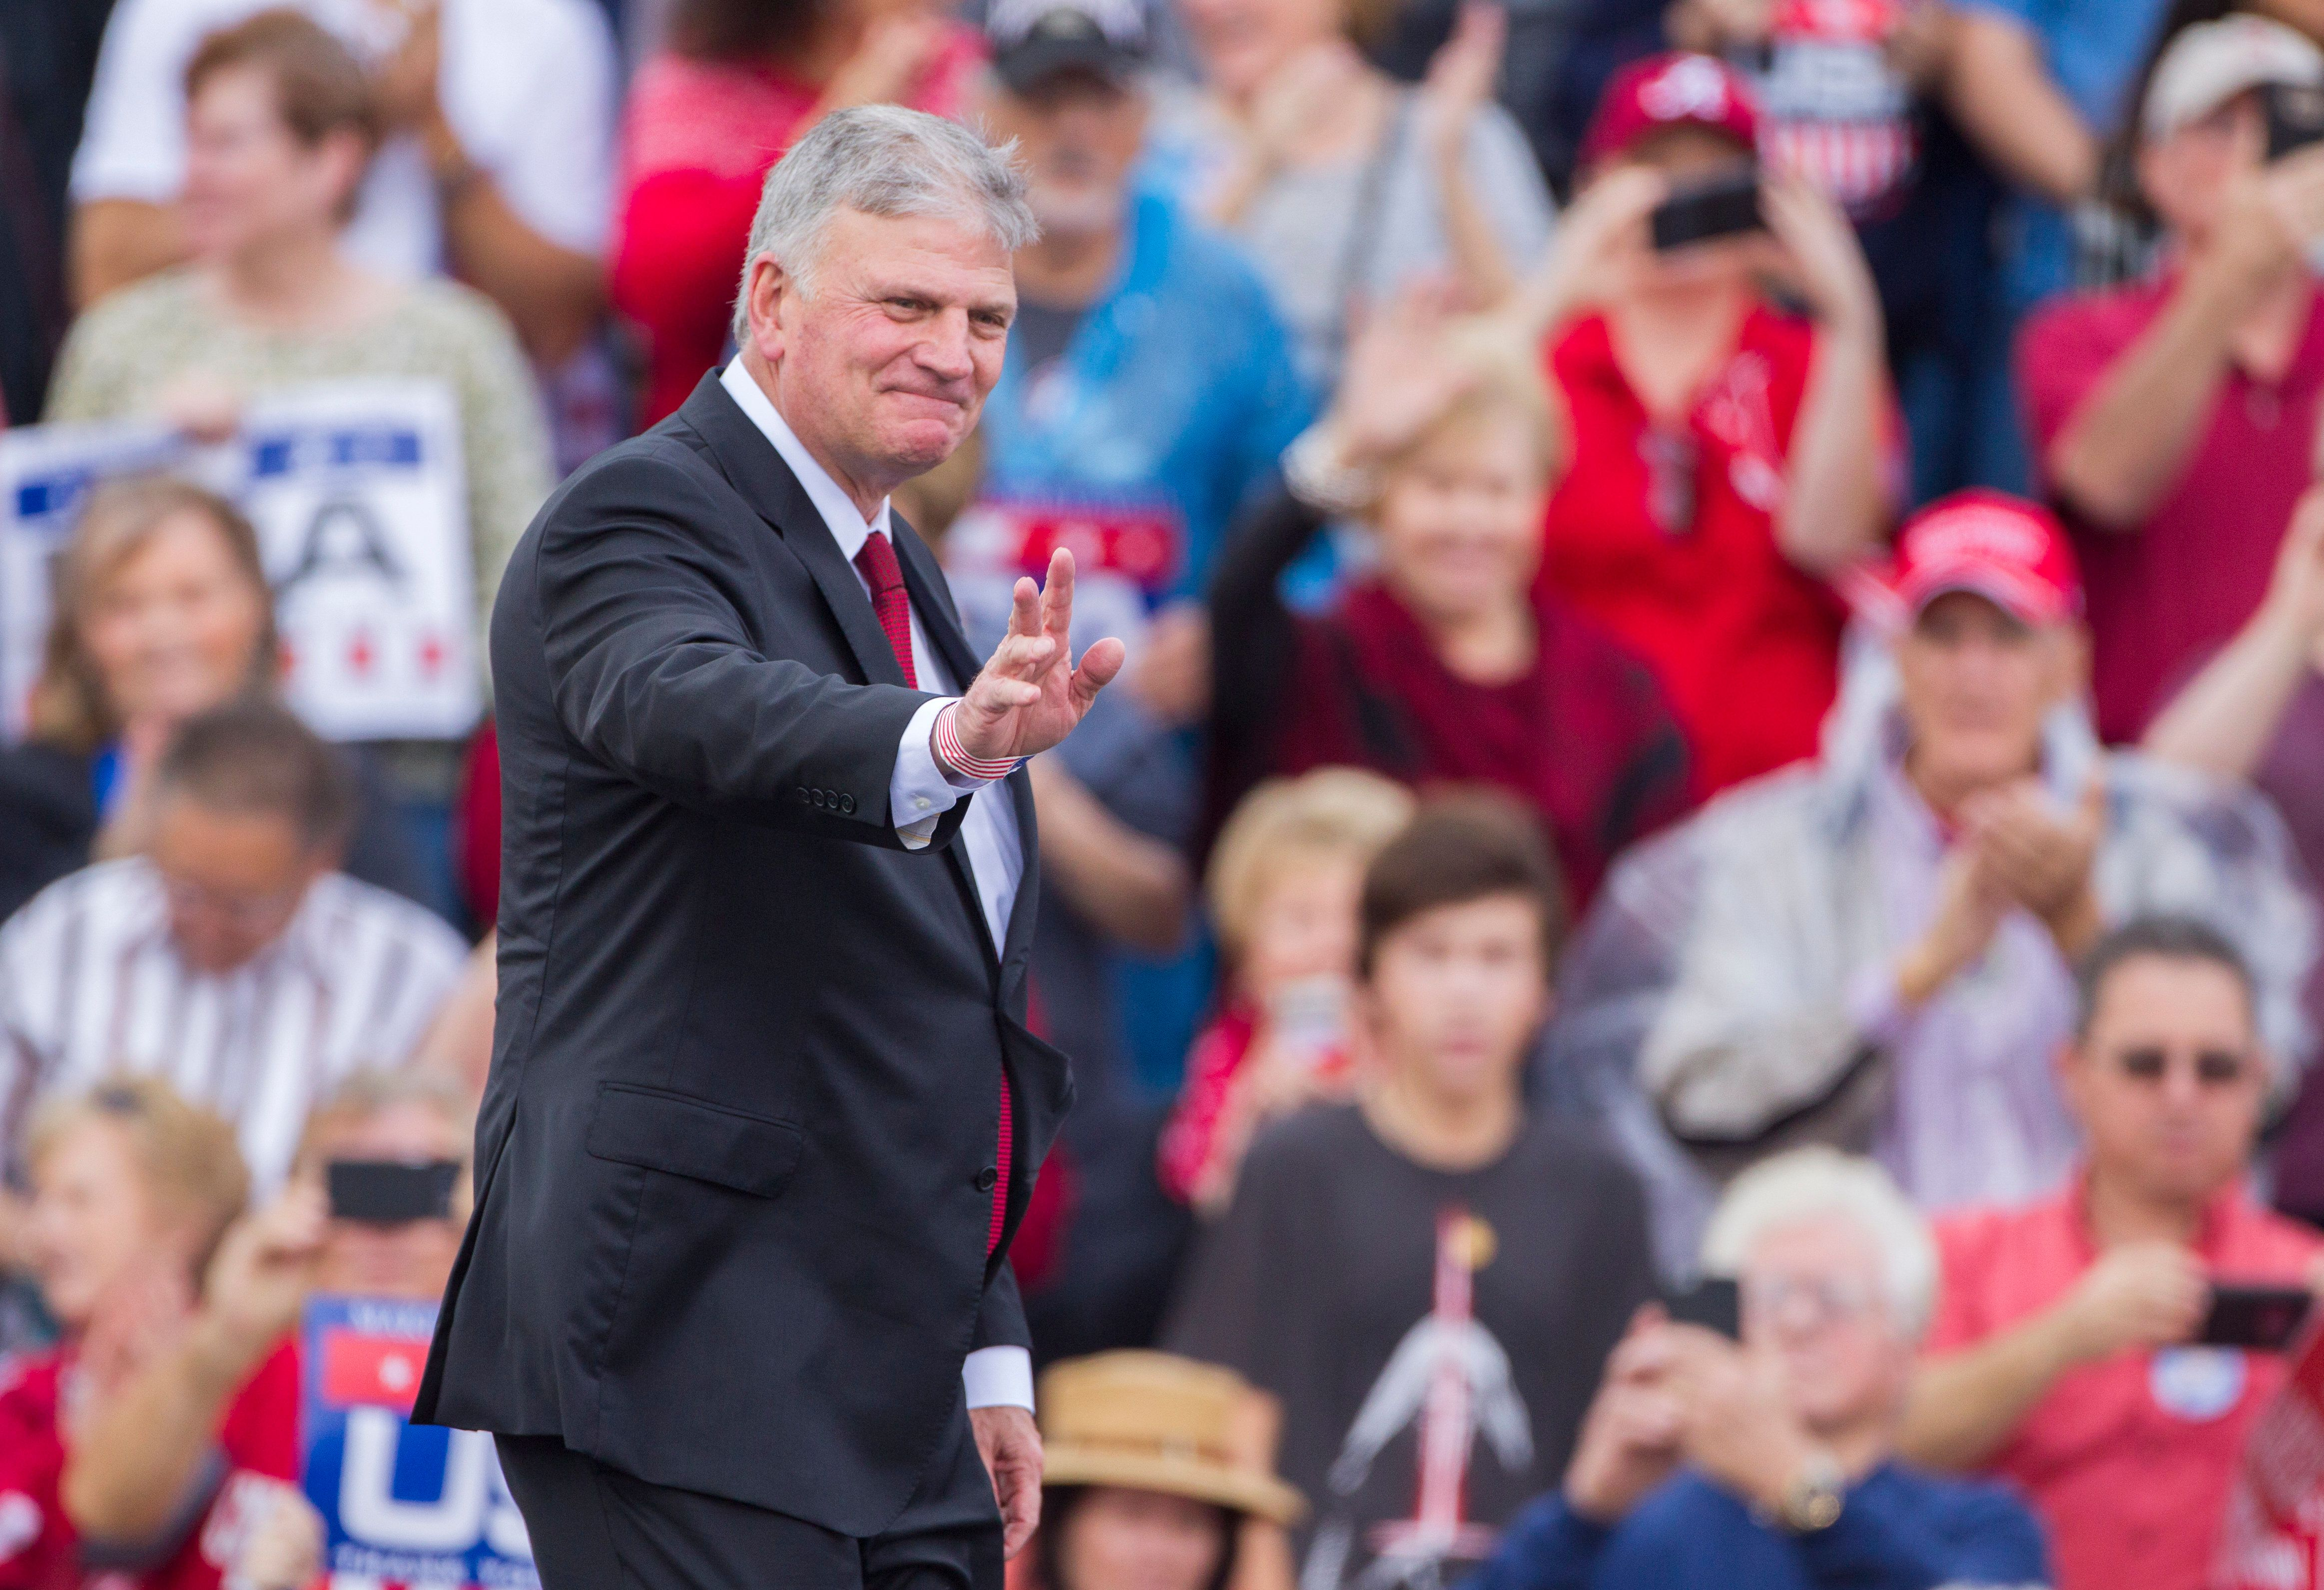 MOBILE, AL - DECEMBER 17:  Evangelist and CEO of the Billy Graham Evangelistic Association Franklin Graham takes the stage before president-elect Donald Trump during a thank you rally in Ladd-Peebles Stadium on December 17, 2016 in Mobile, Alabama. President-elect Trump has been visiting several states that he won, to thank people for their support during the U.S. election.   (Photo by Mark Wallheiser/Getty Images)